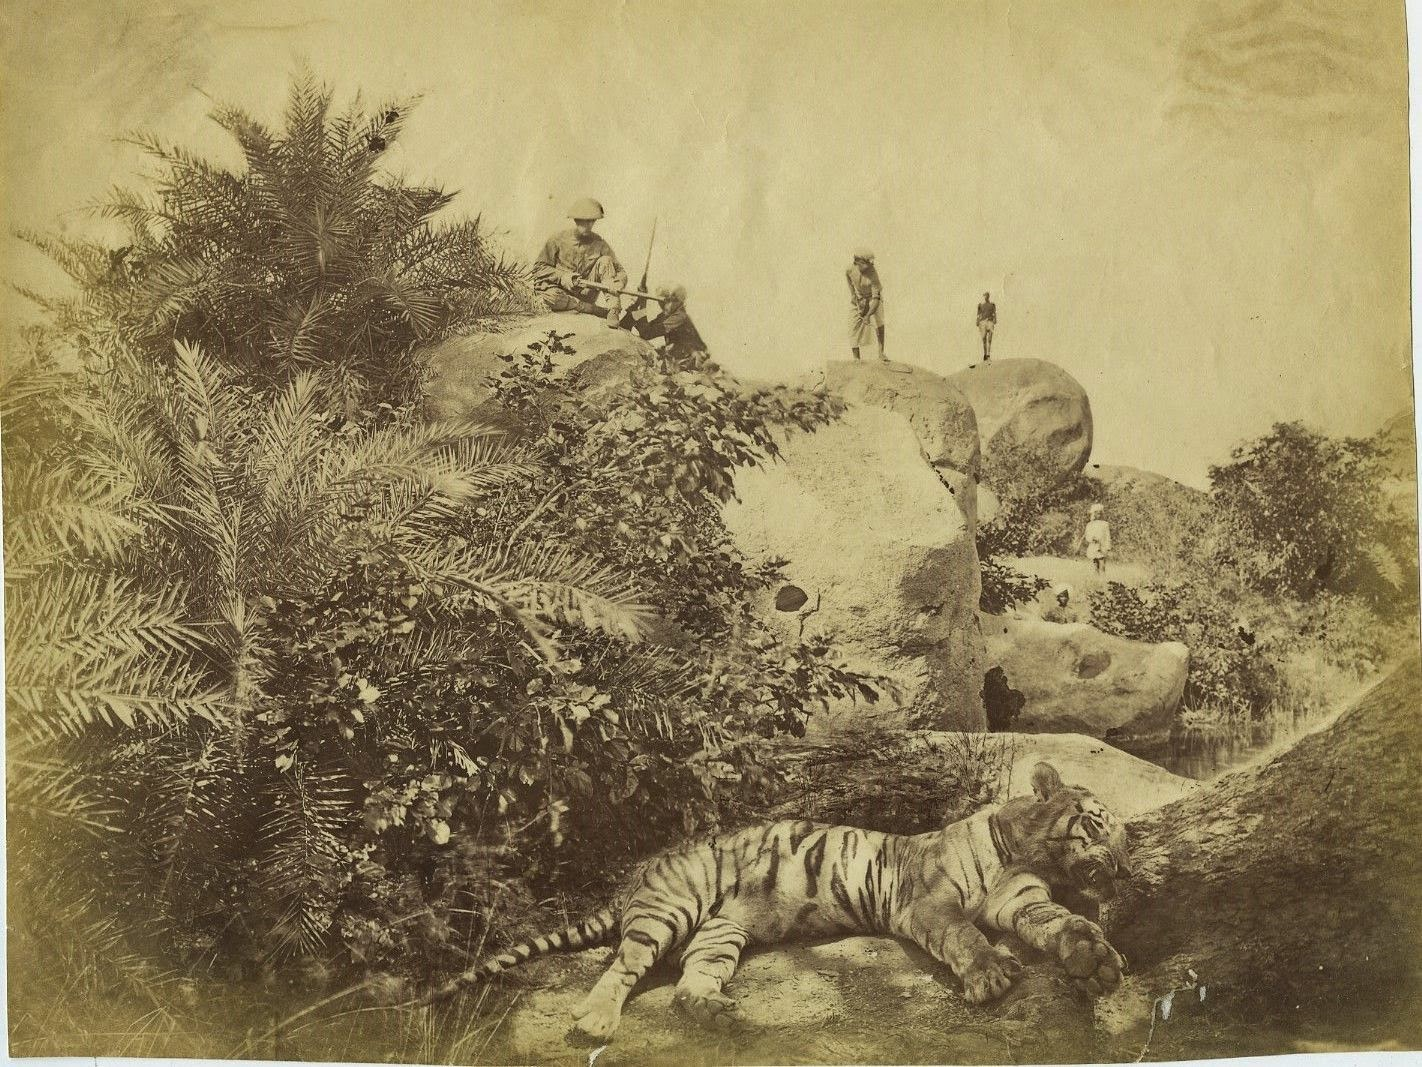 Dead Tiger and Hunters - India c1880's